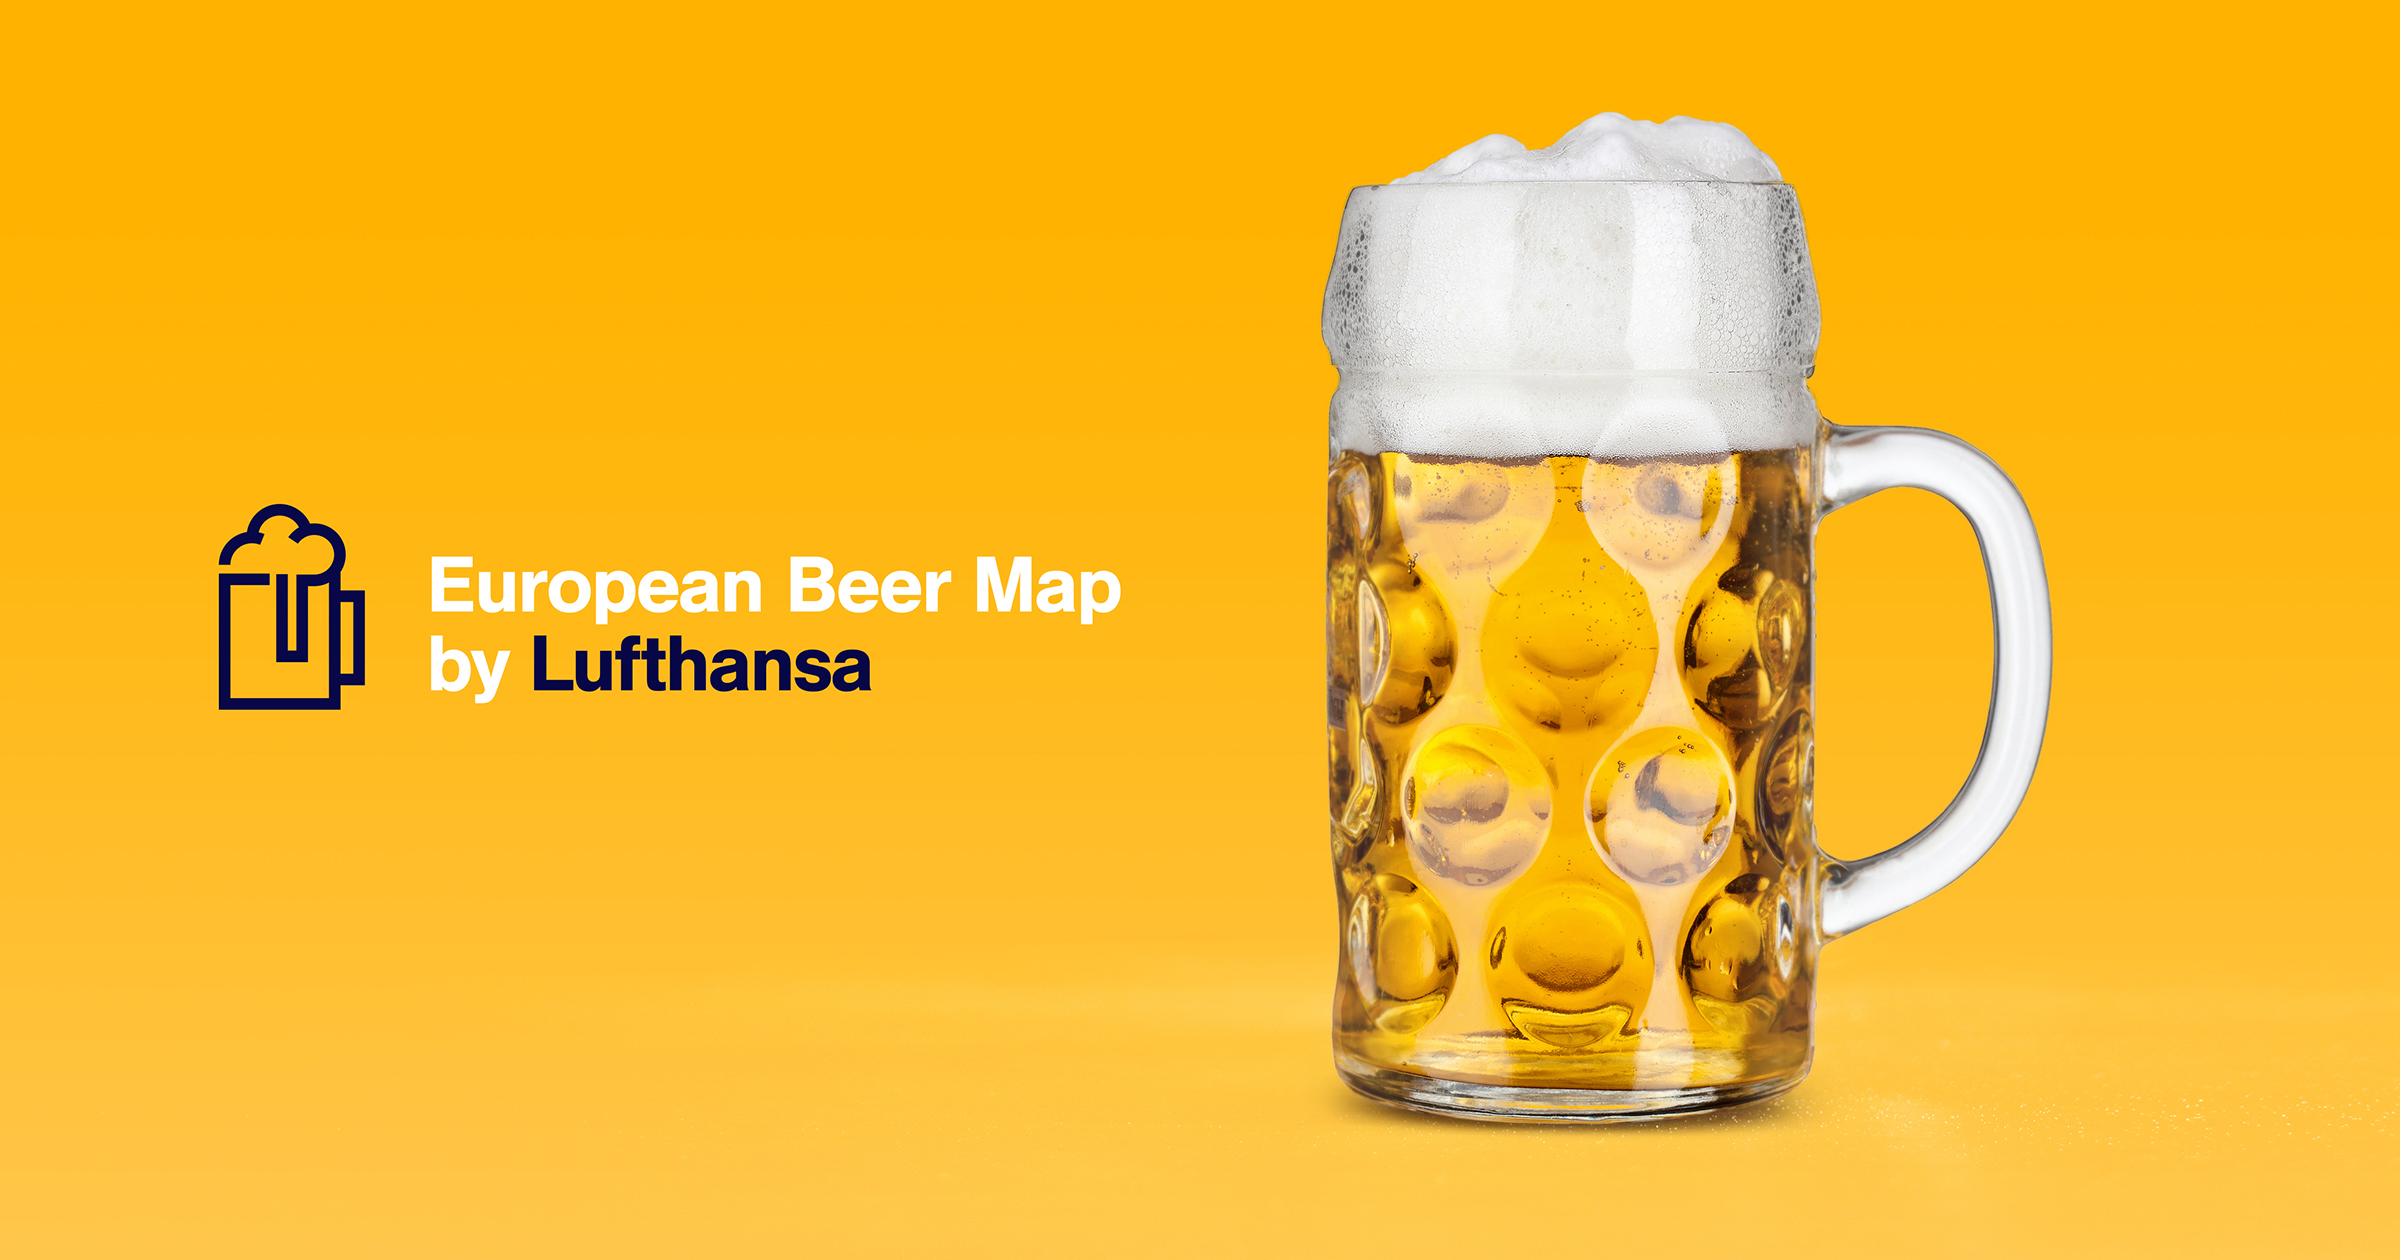 Beer_Yellow_BG_Facebook_Text_144ppi